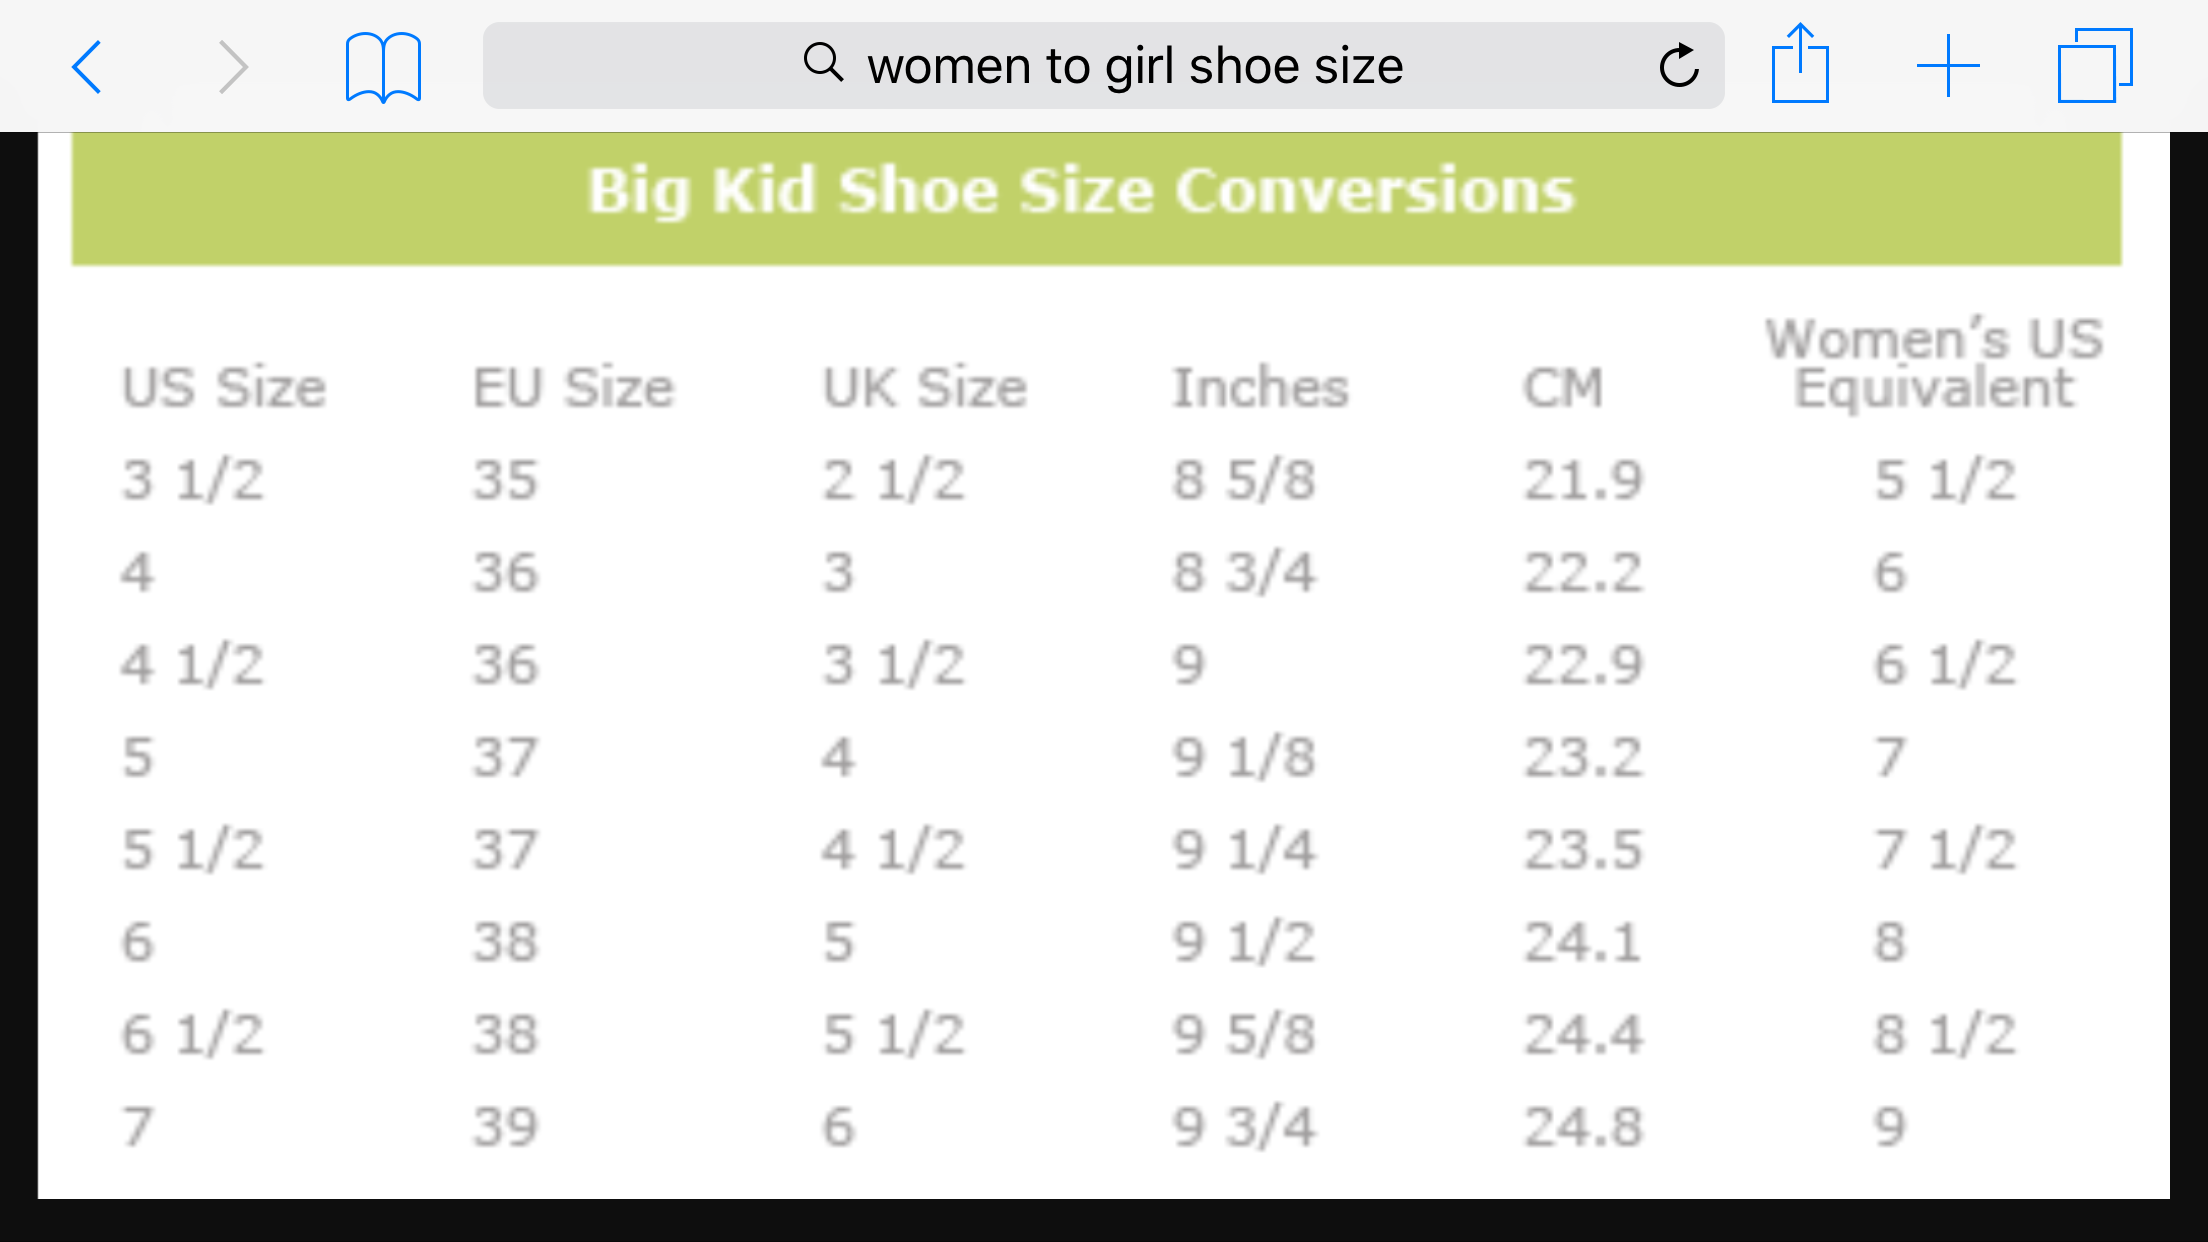 WHO KNEW? Girls can wear women's shoes